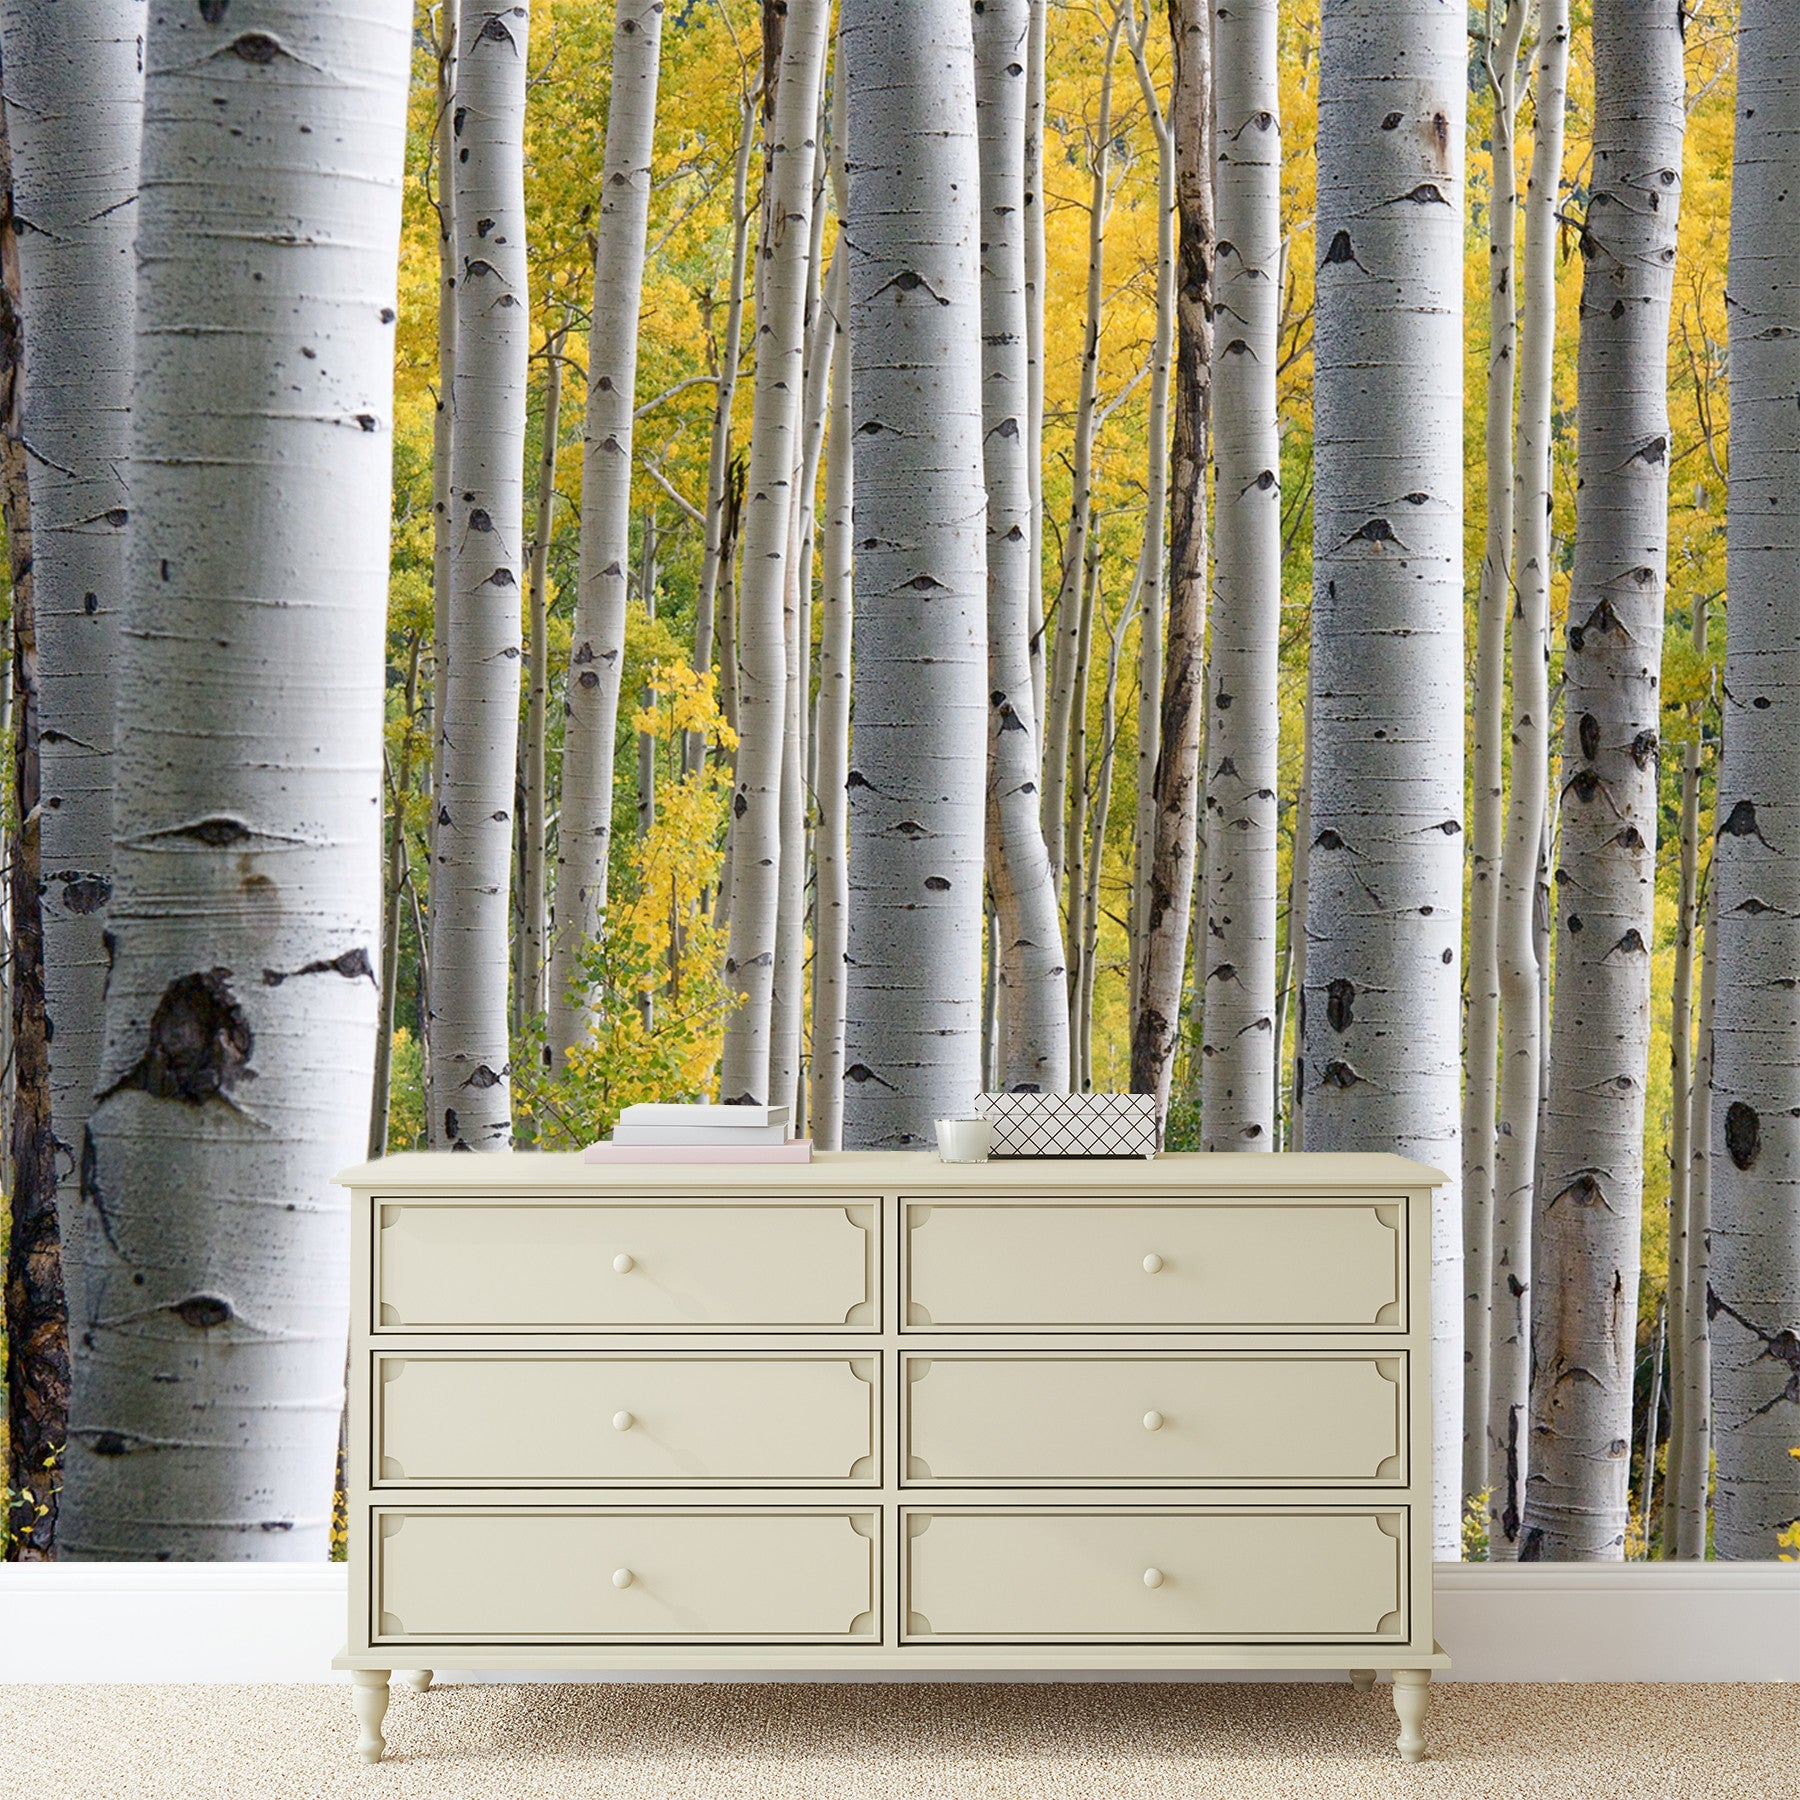 Birch Tree Adhesive Mural